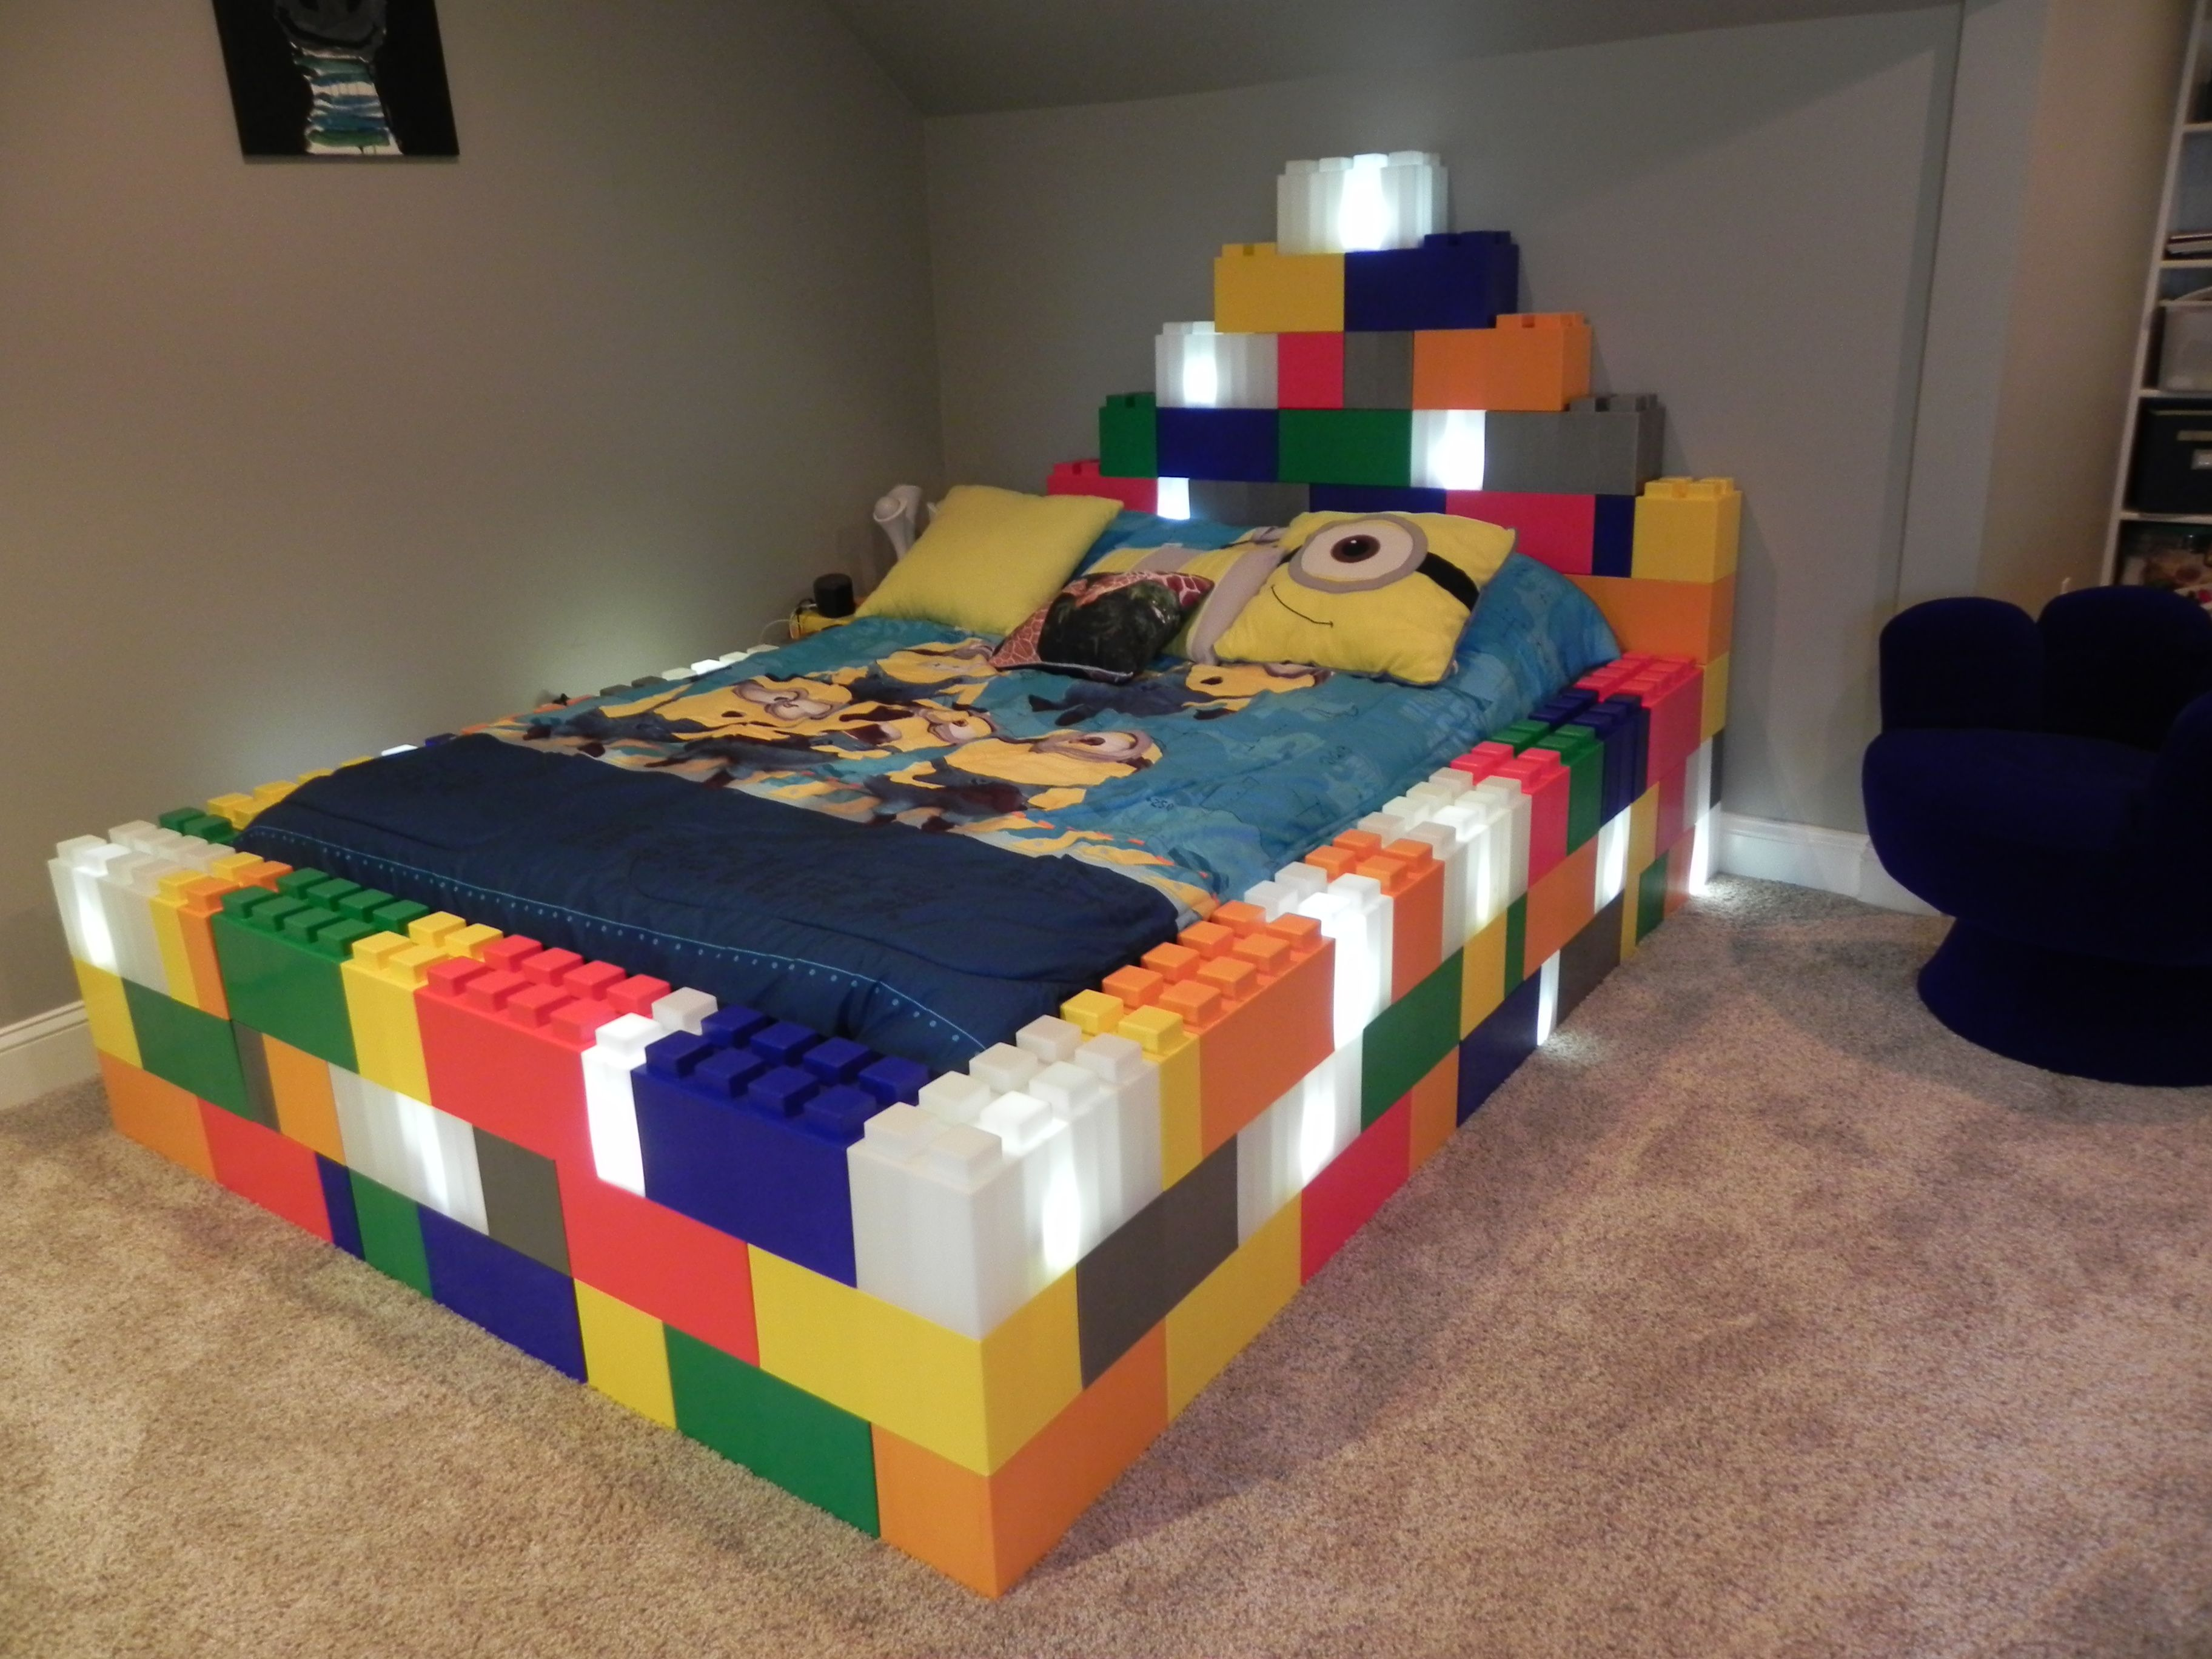 Everblock Bed Blocks Everblock Bed Made From A Series Of